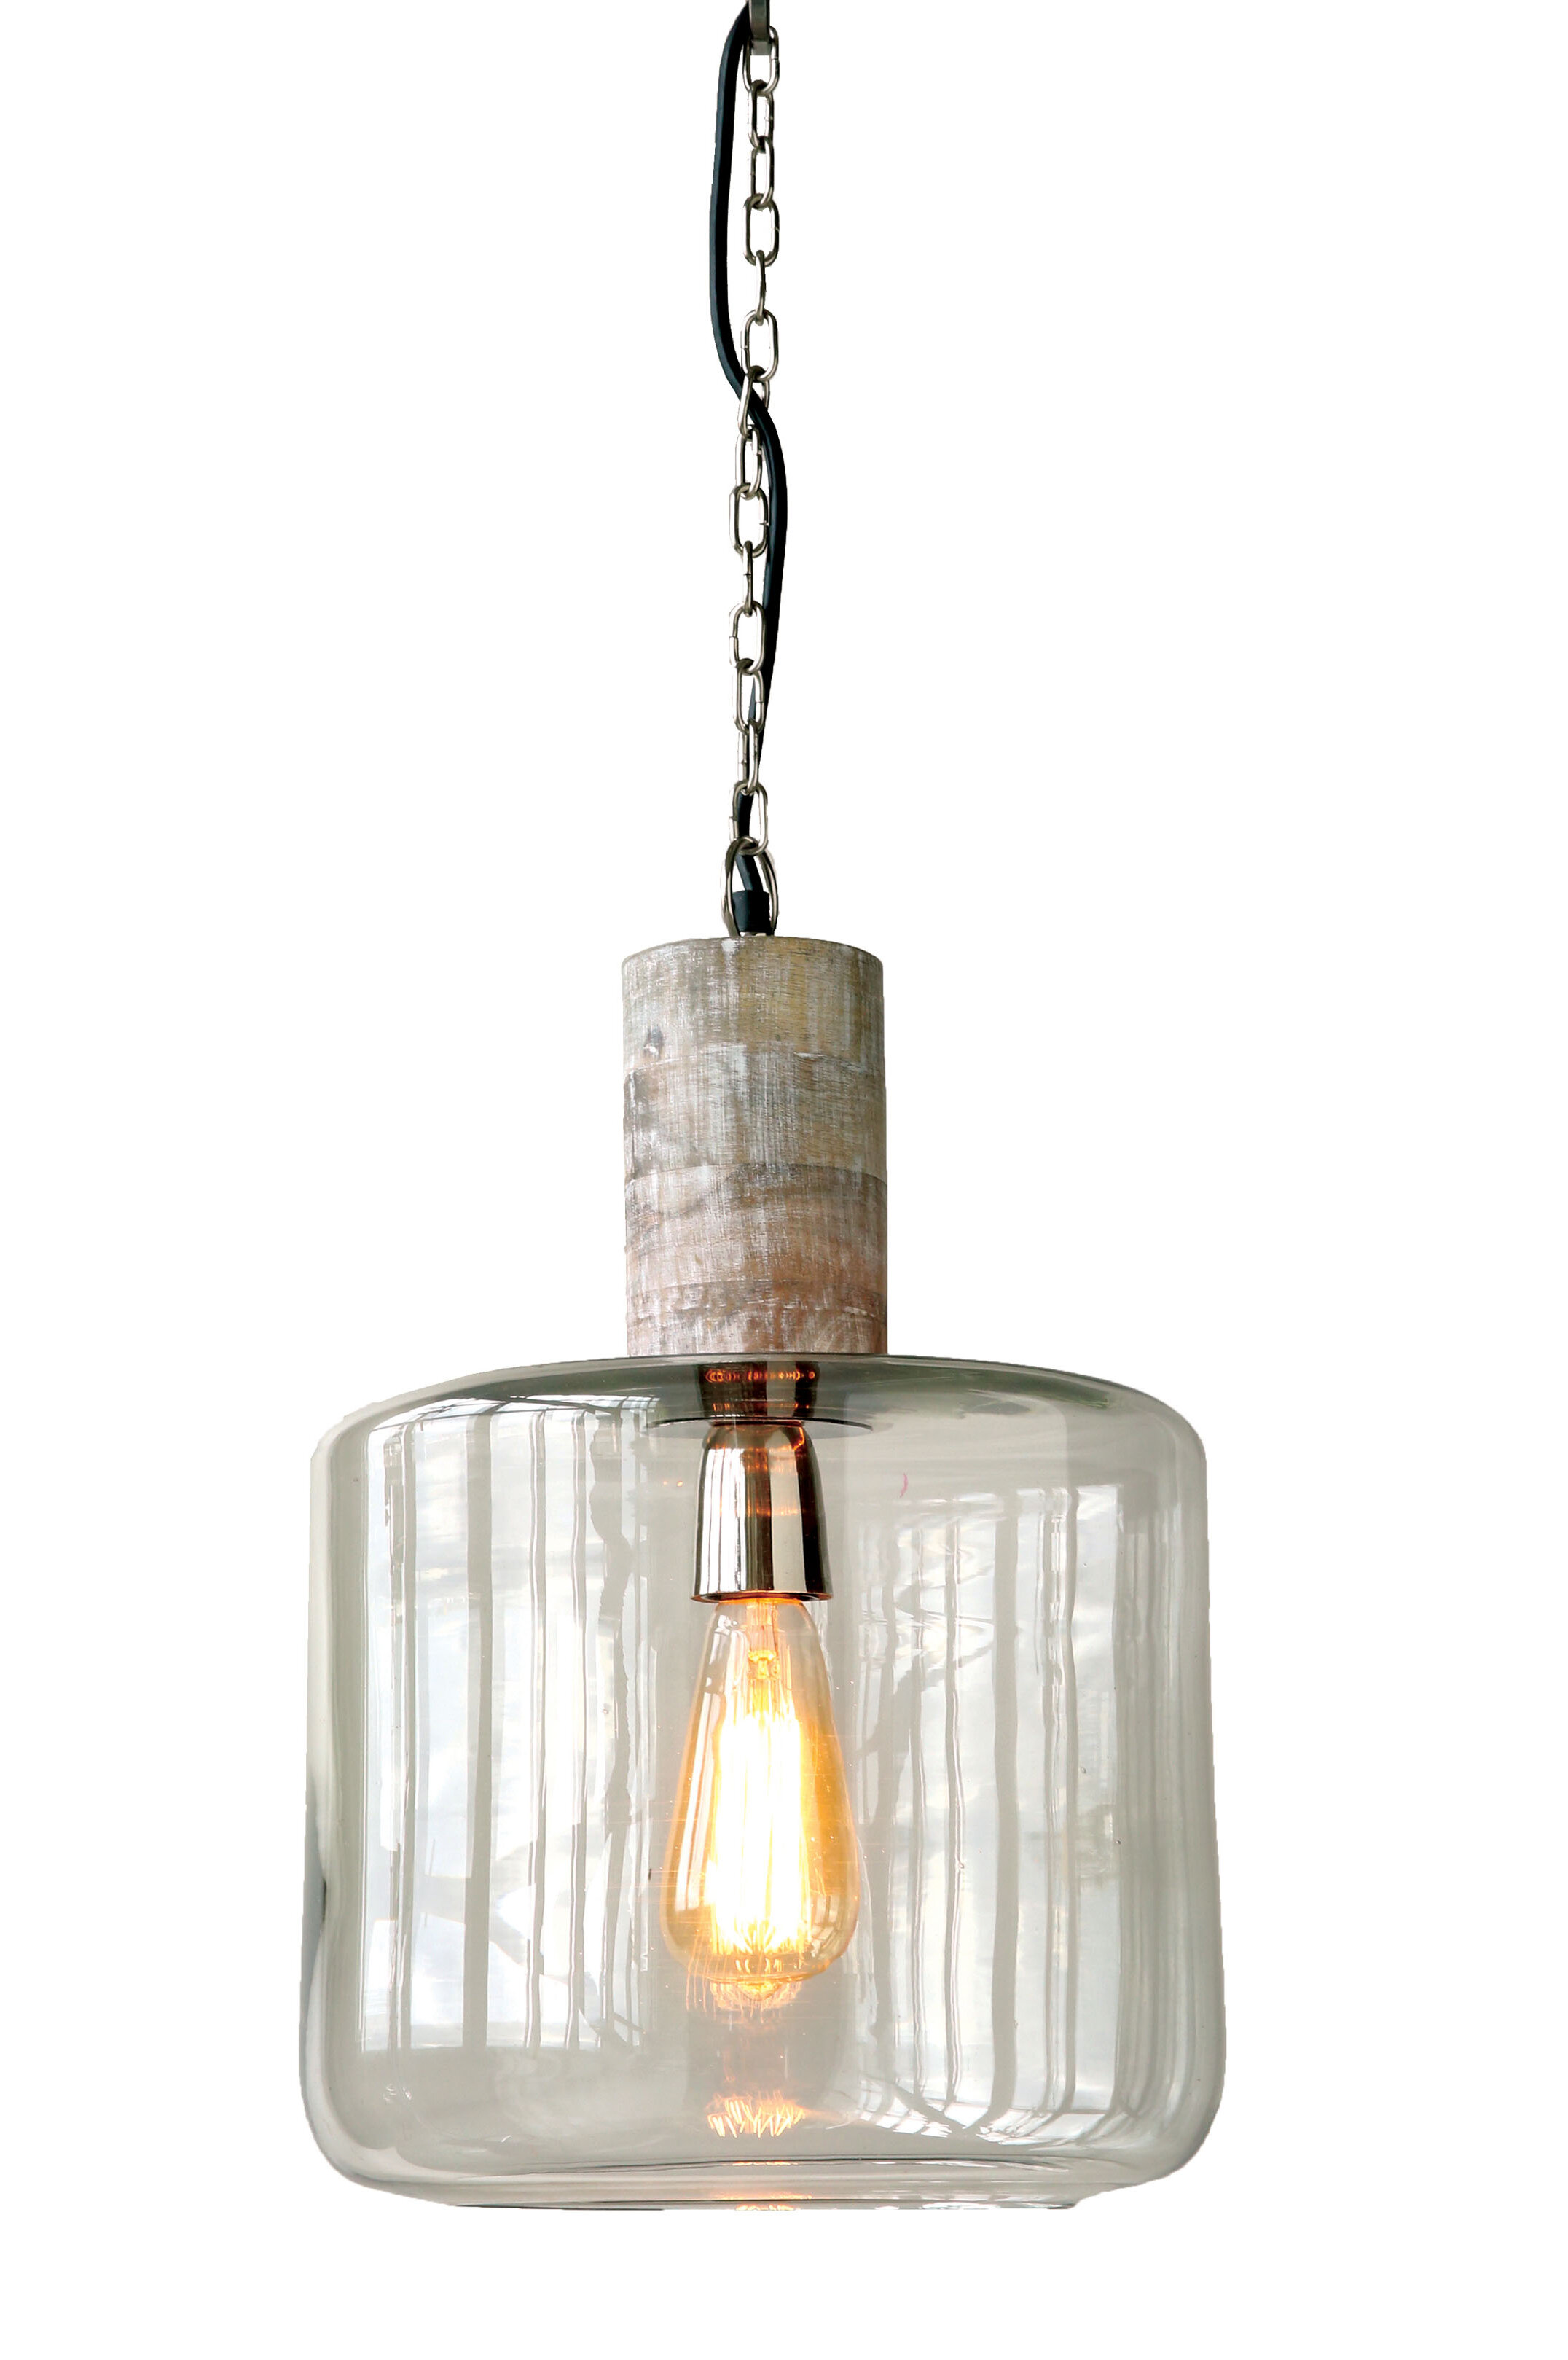 Union rustic loughlin 1 light drum pendant reviews wayfair